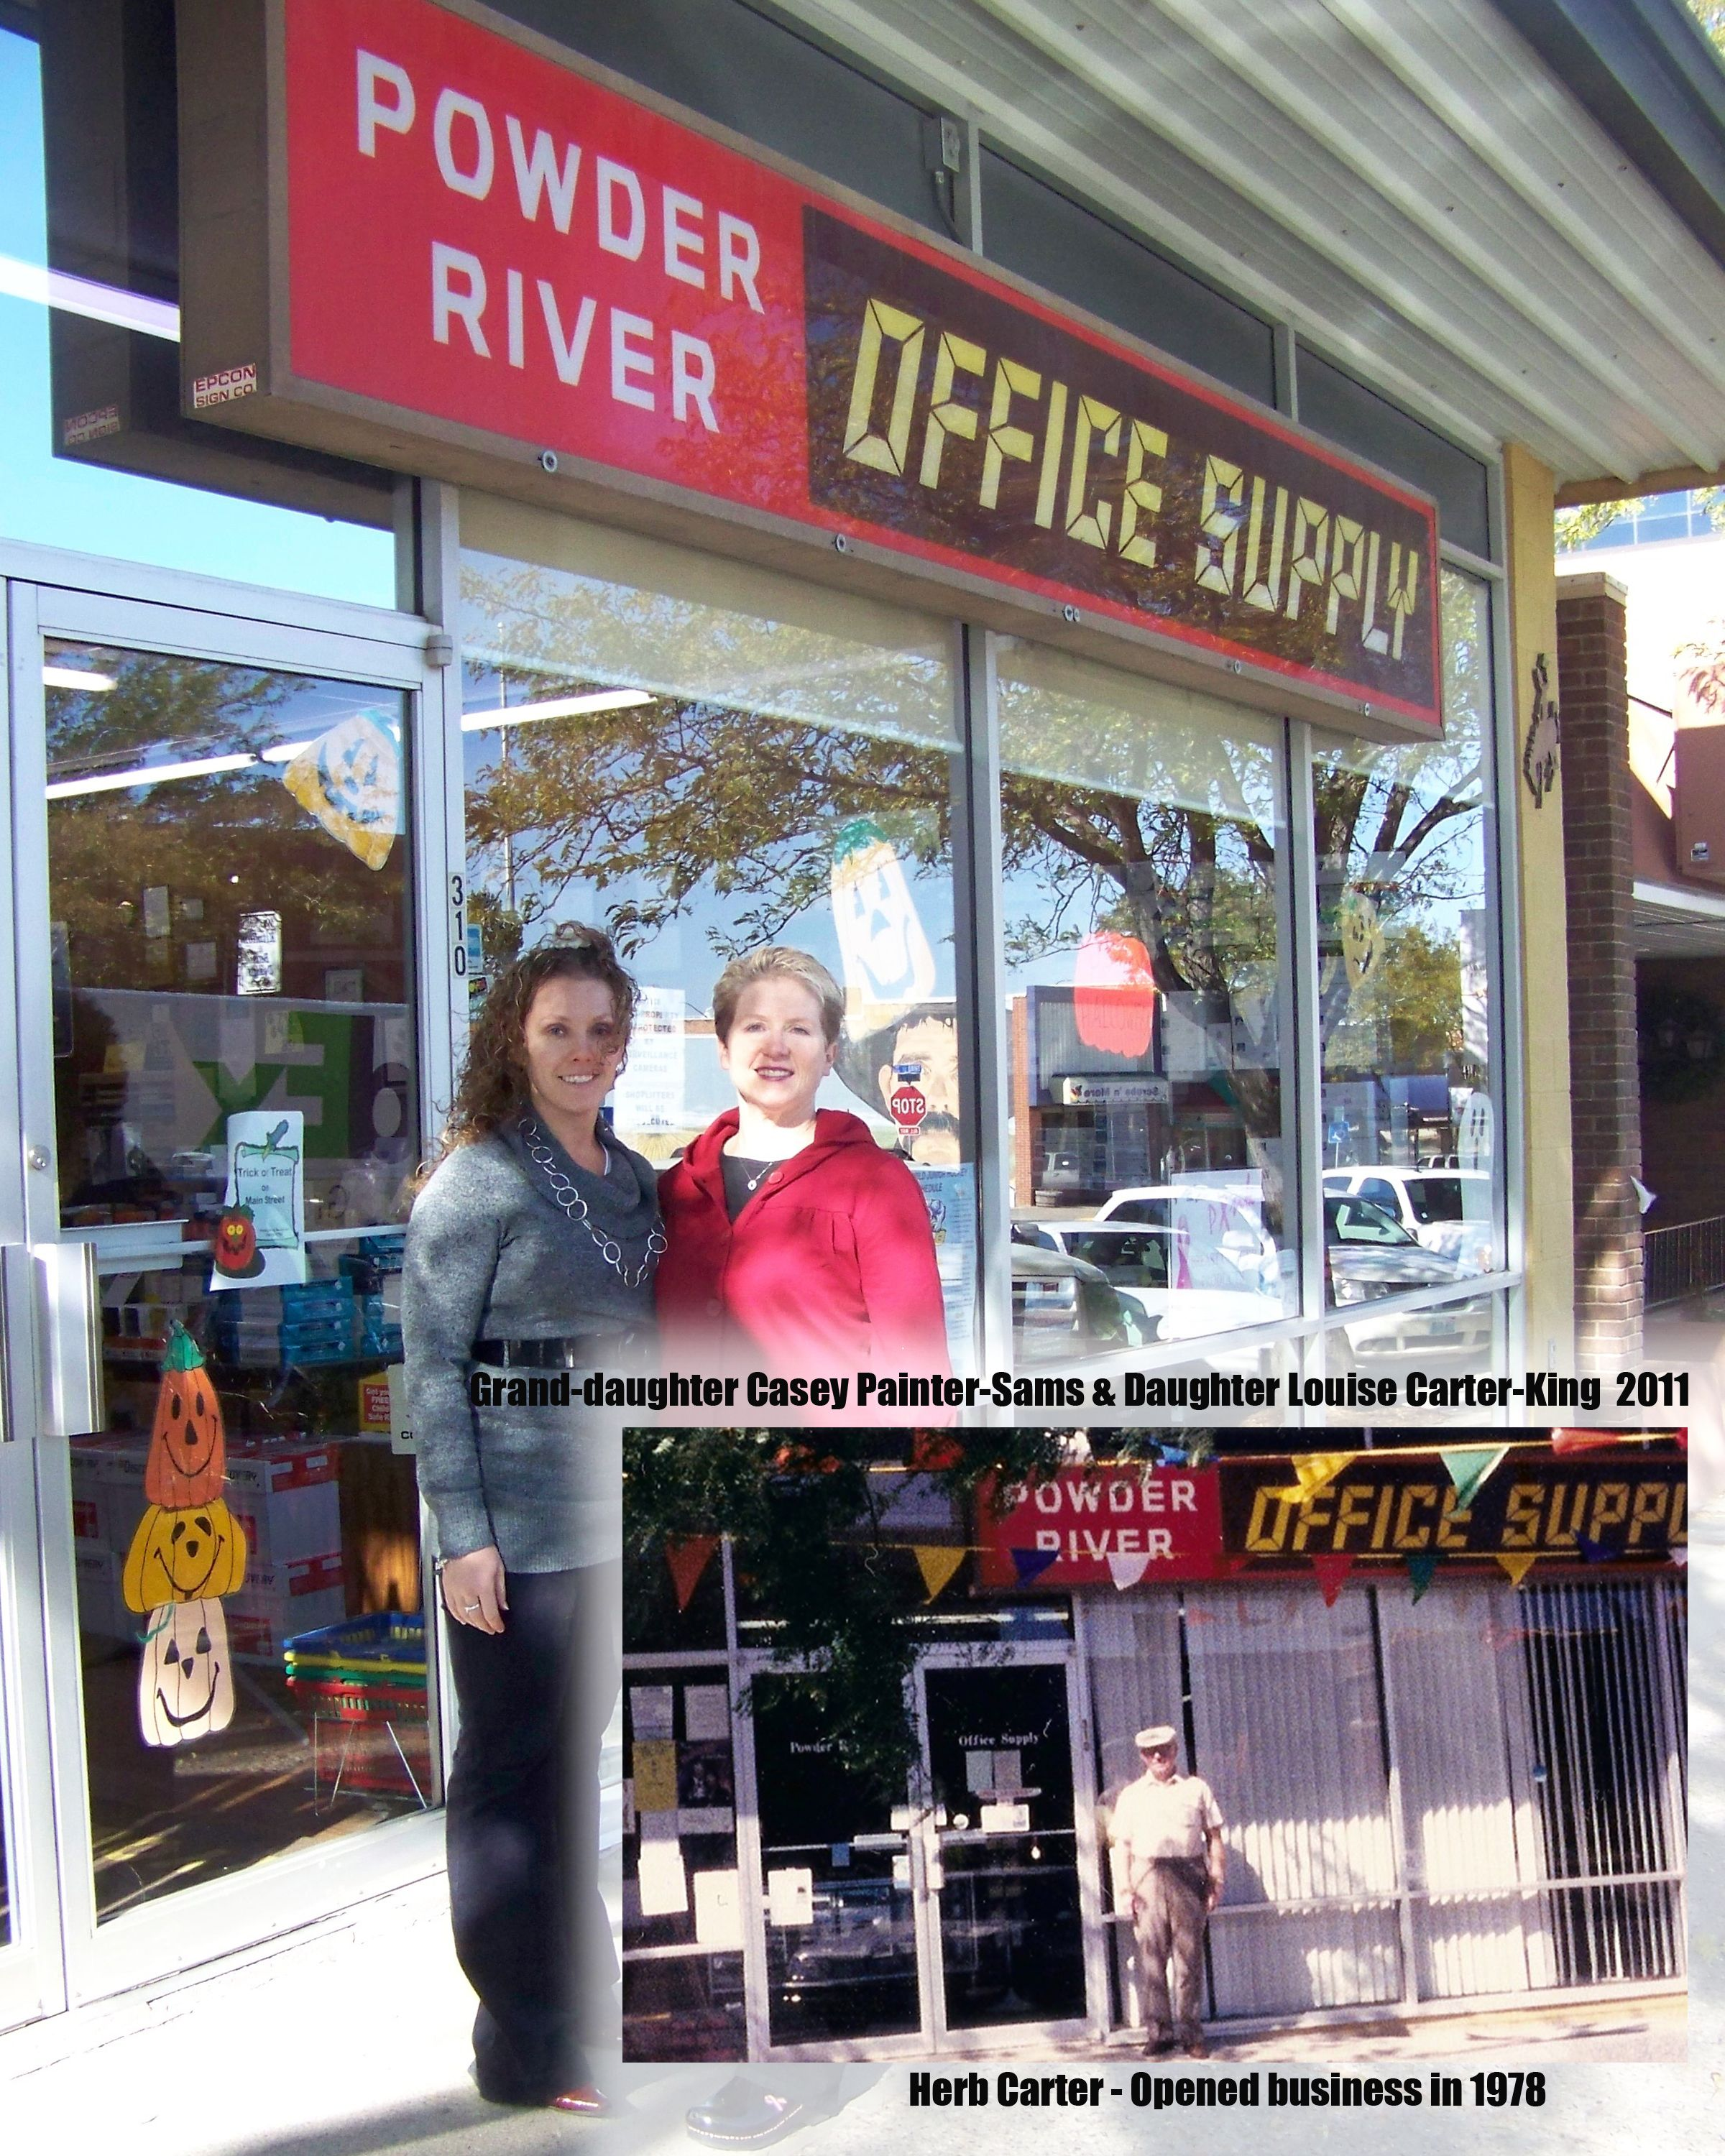 Powder River Office Supply Inc Downtown Gillette Wy